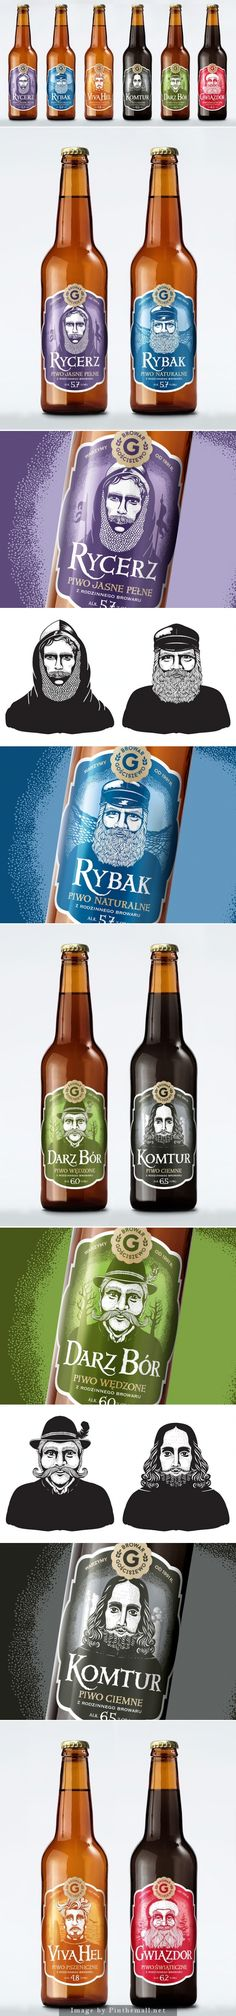 The Characters by Gościszewo #Brewery #packaging by Ostecx Créative - http://www.packagingoftheworld.com/2014/11/the-characters-by-gosciszewo-brewery.html